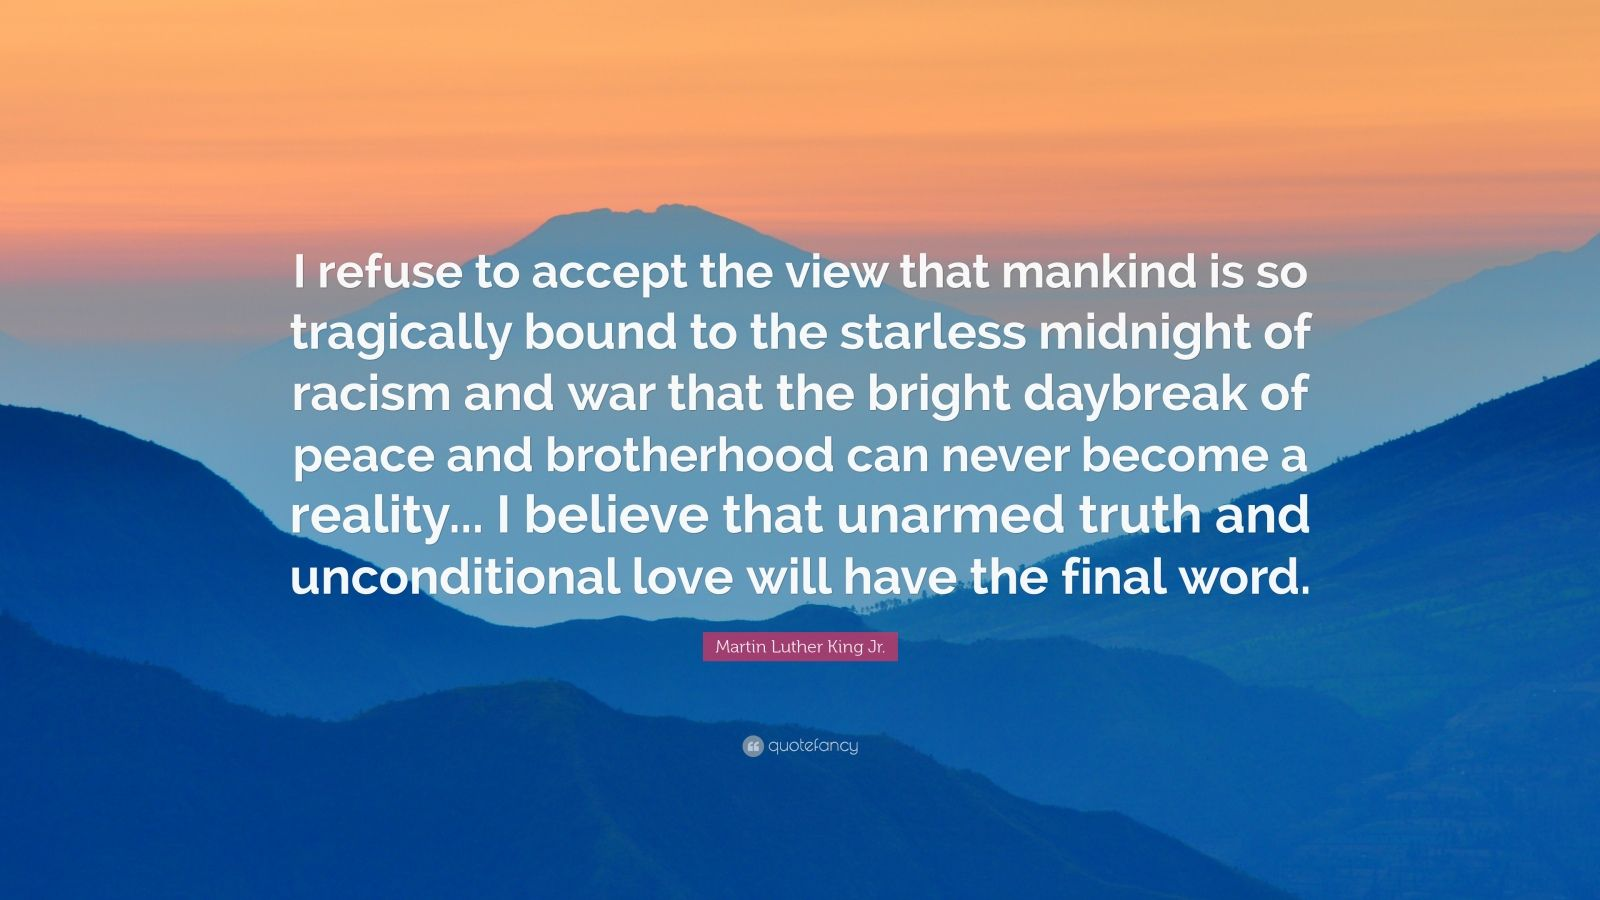 "Martin Luther King Jr. Quote: ""I refuse to accept the view that mankind is so tragically bound to the starless midnight of racism and war that the bright daybreak of peace and brotherhood can never become a reality... I believe that unarmed truth and unconditional love will have the final word."""